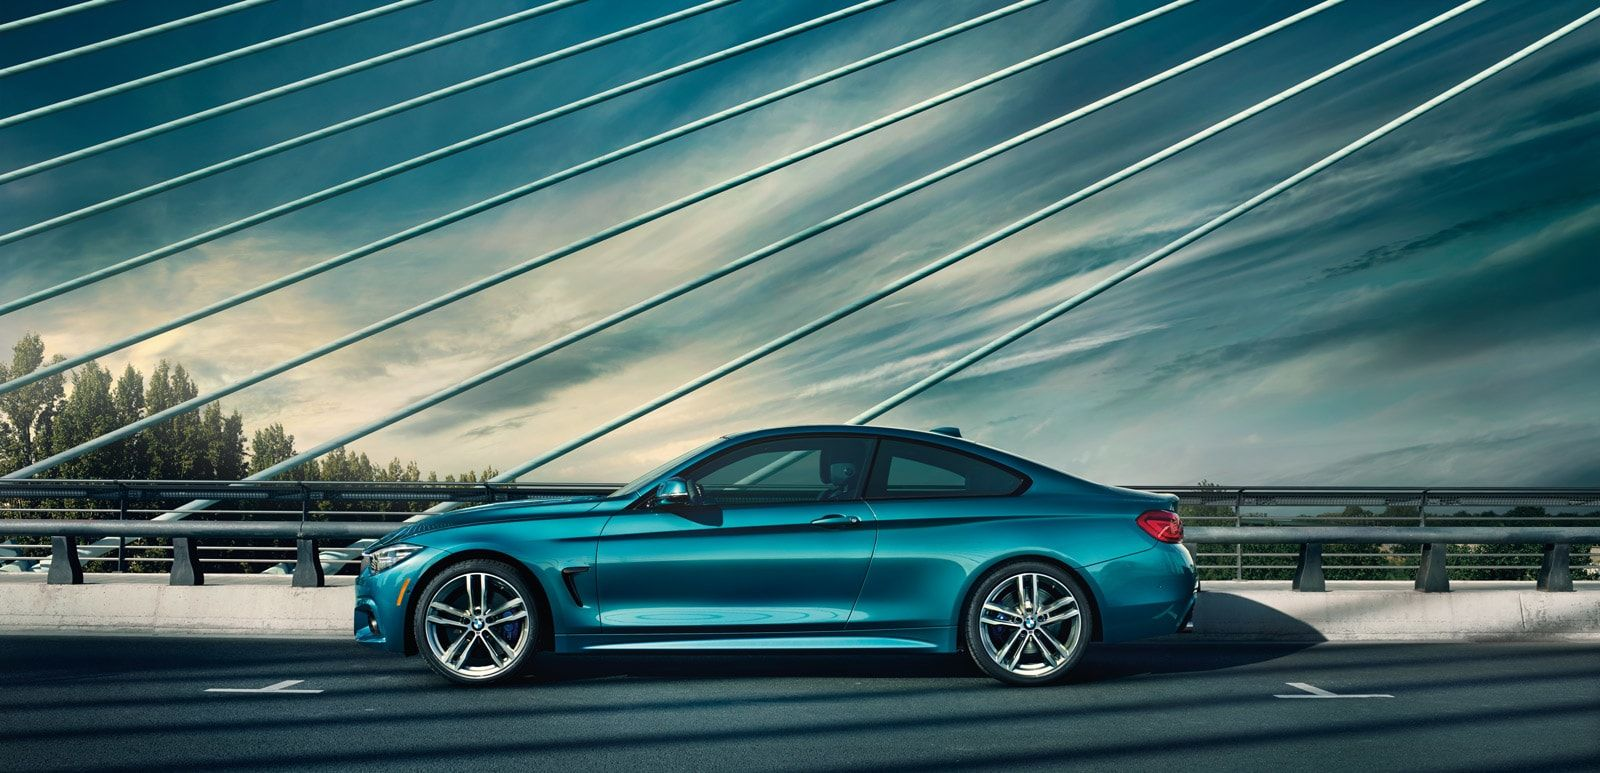 Profile Shot Of The 2019 Bmw 4 Series Coupe Parked On A Suspension